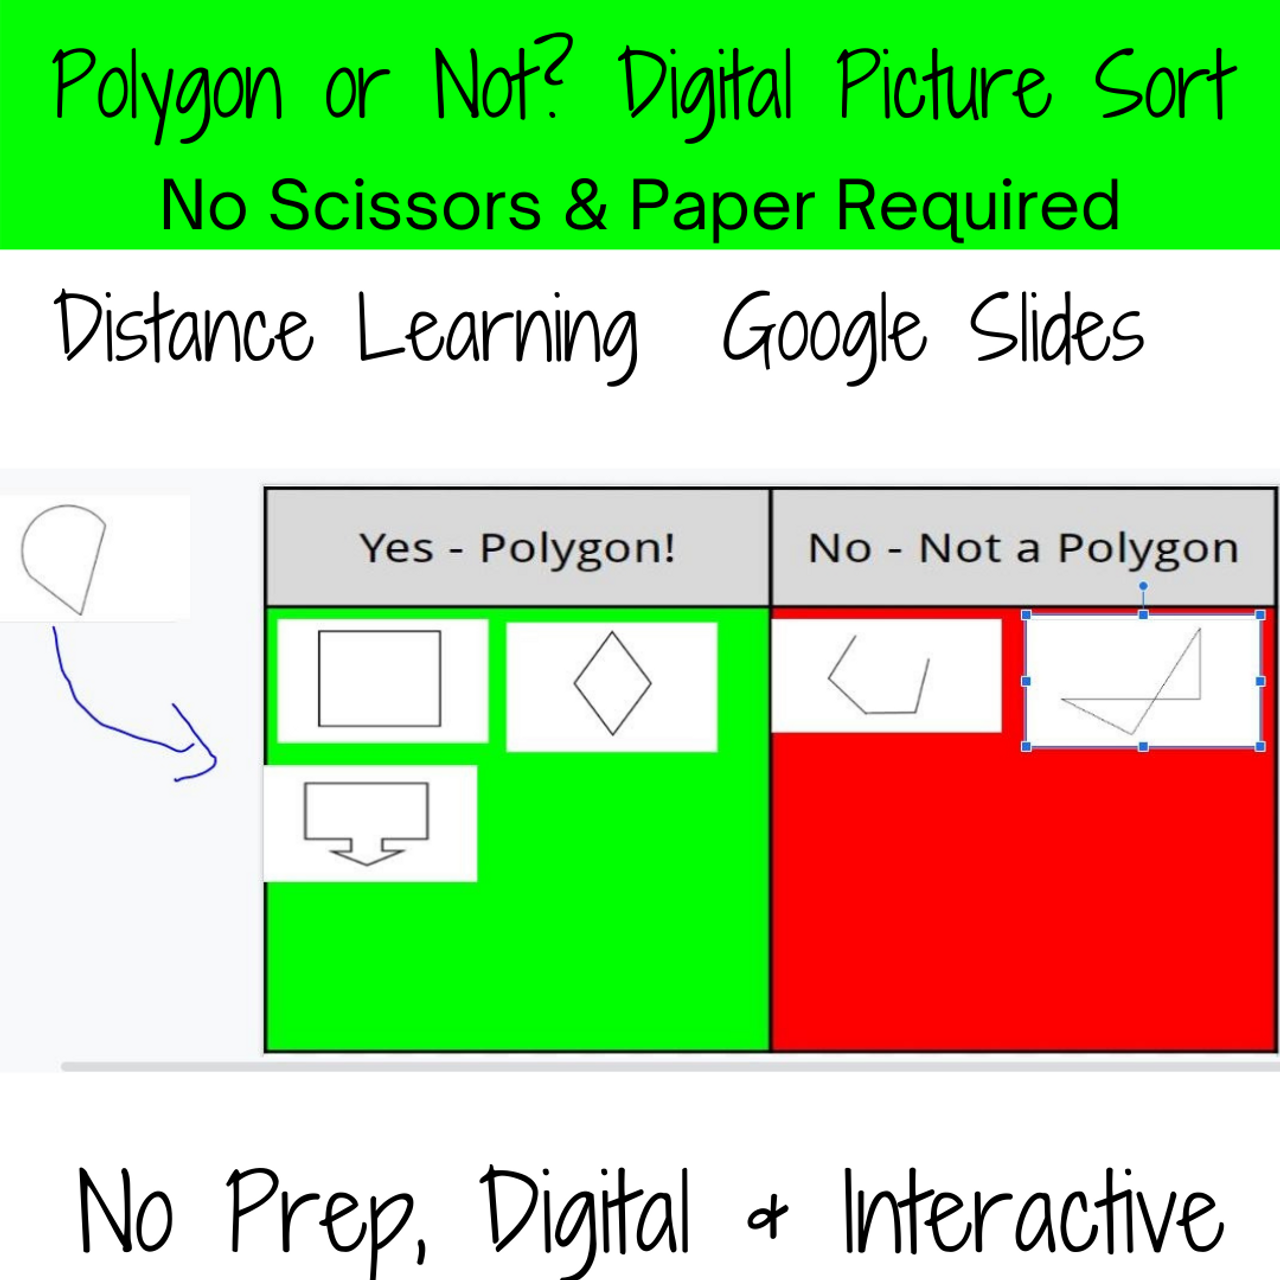 Digital Sort- Classify Shapes into Polygons & Non Polygons